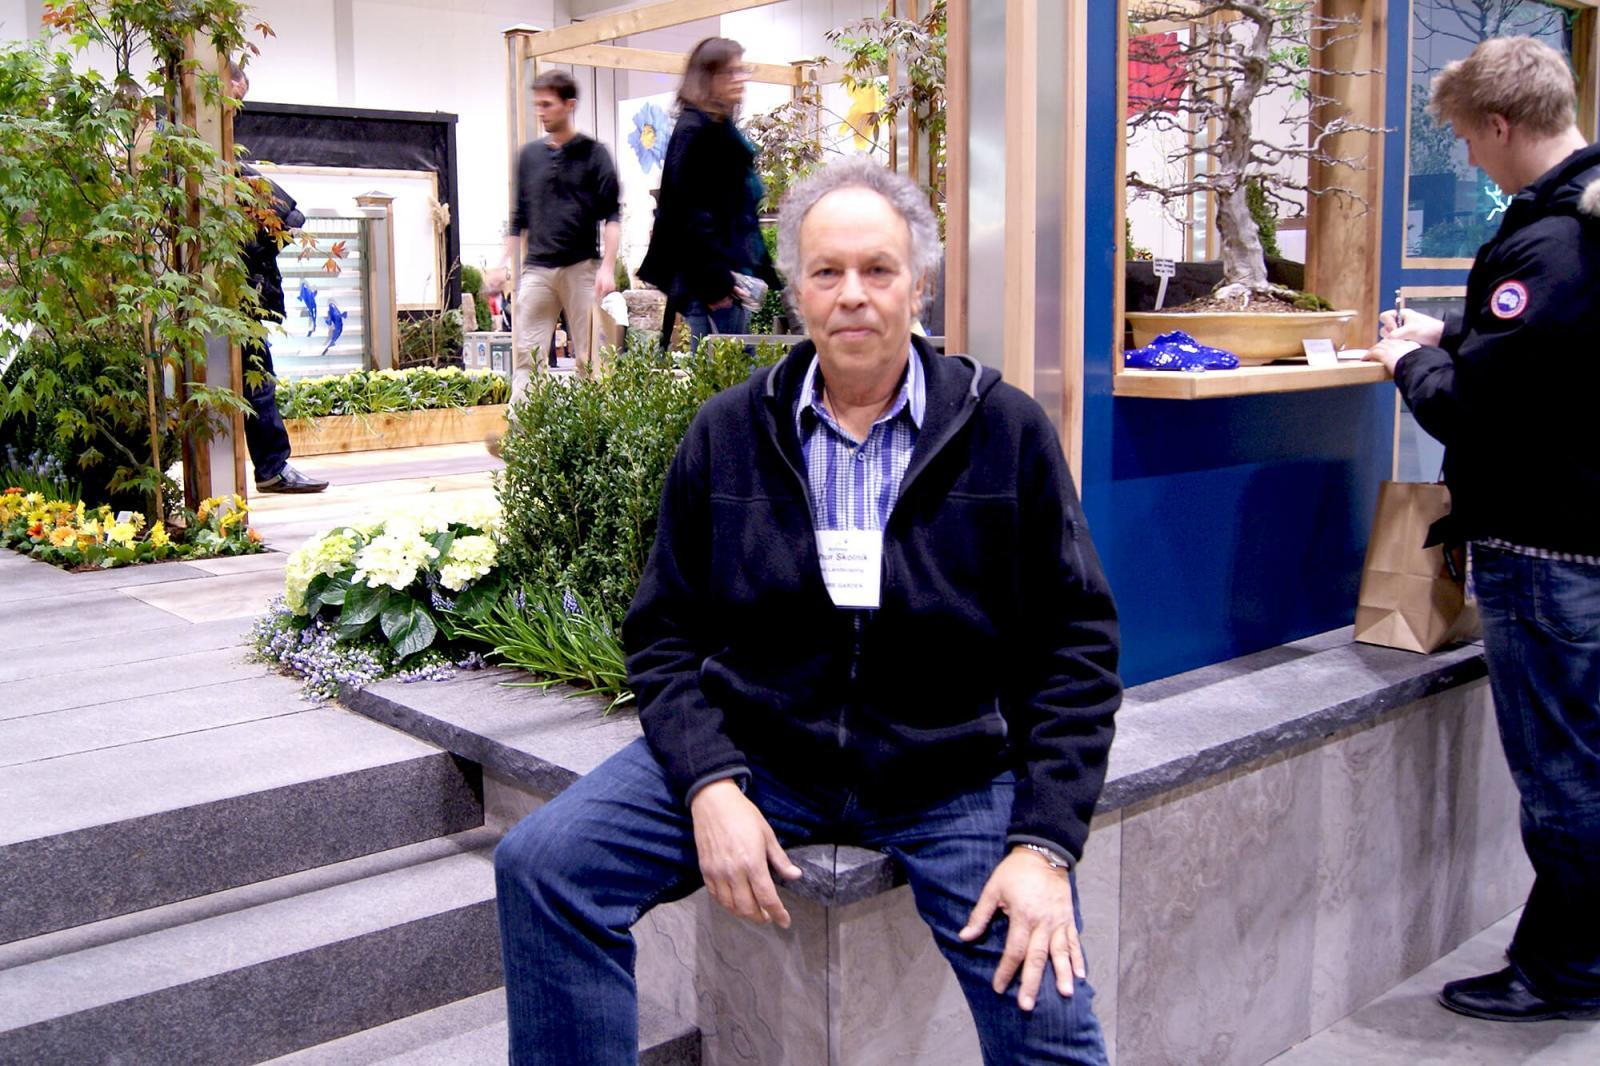 Arthur Skolnik of Shibui Landscaping Toronto poses with his garden, which received a number of awards at Canada Blooms.